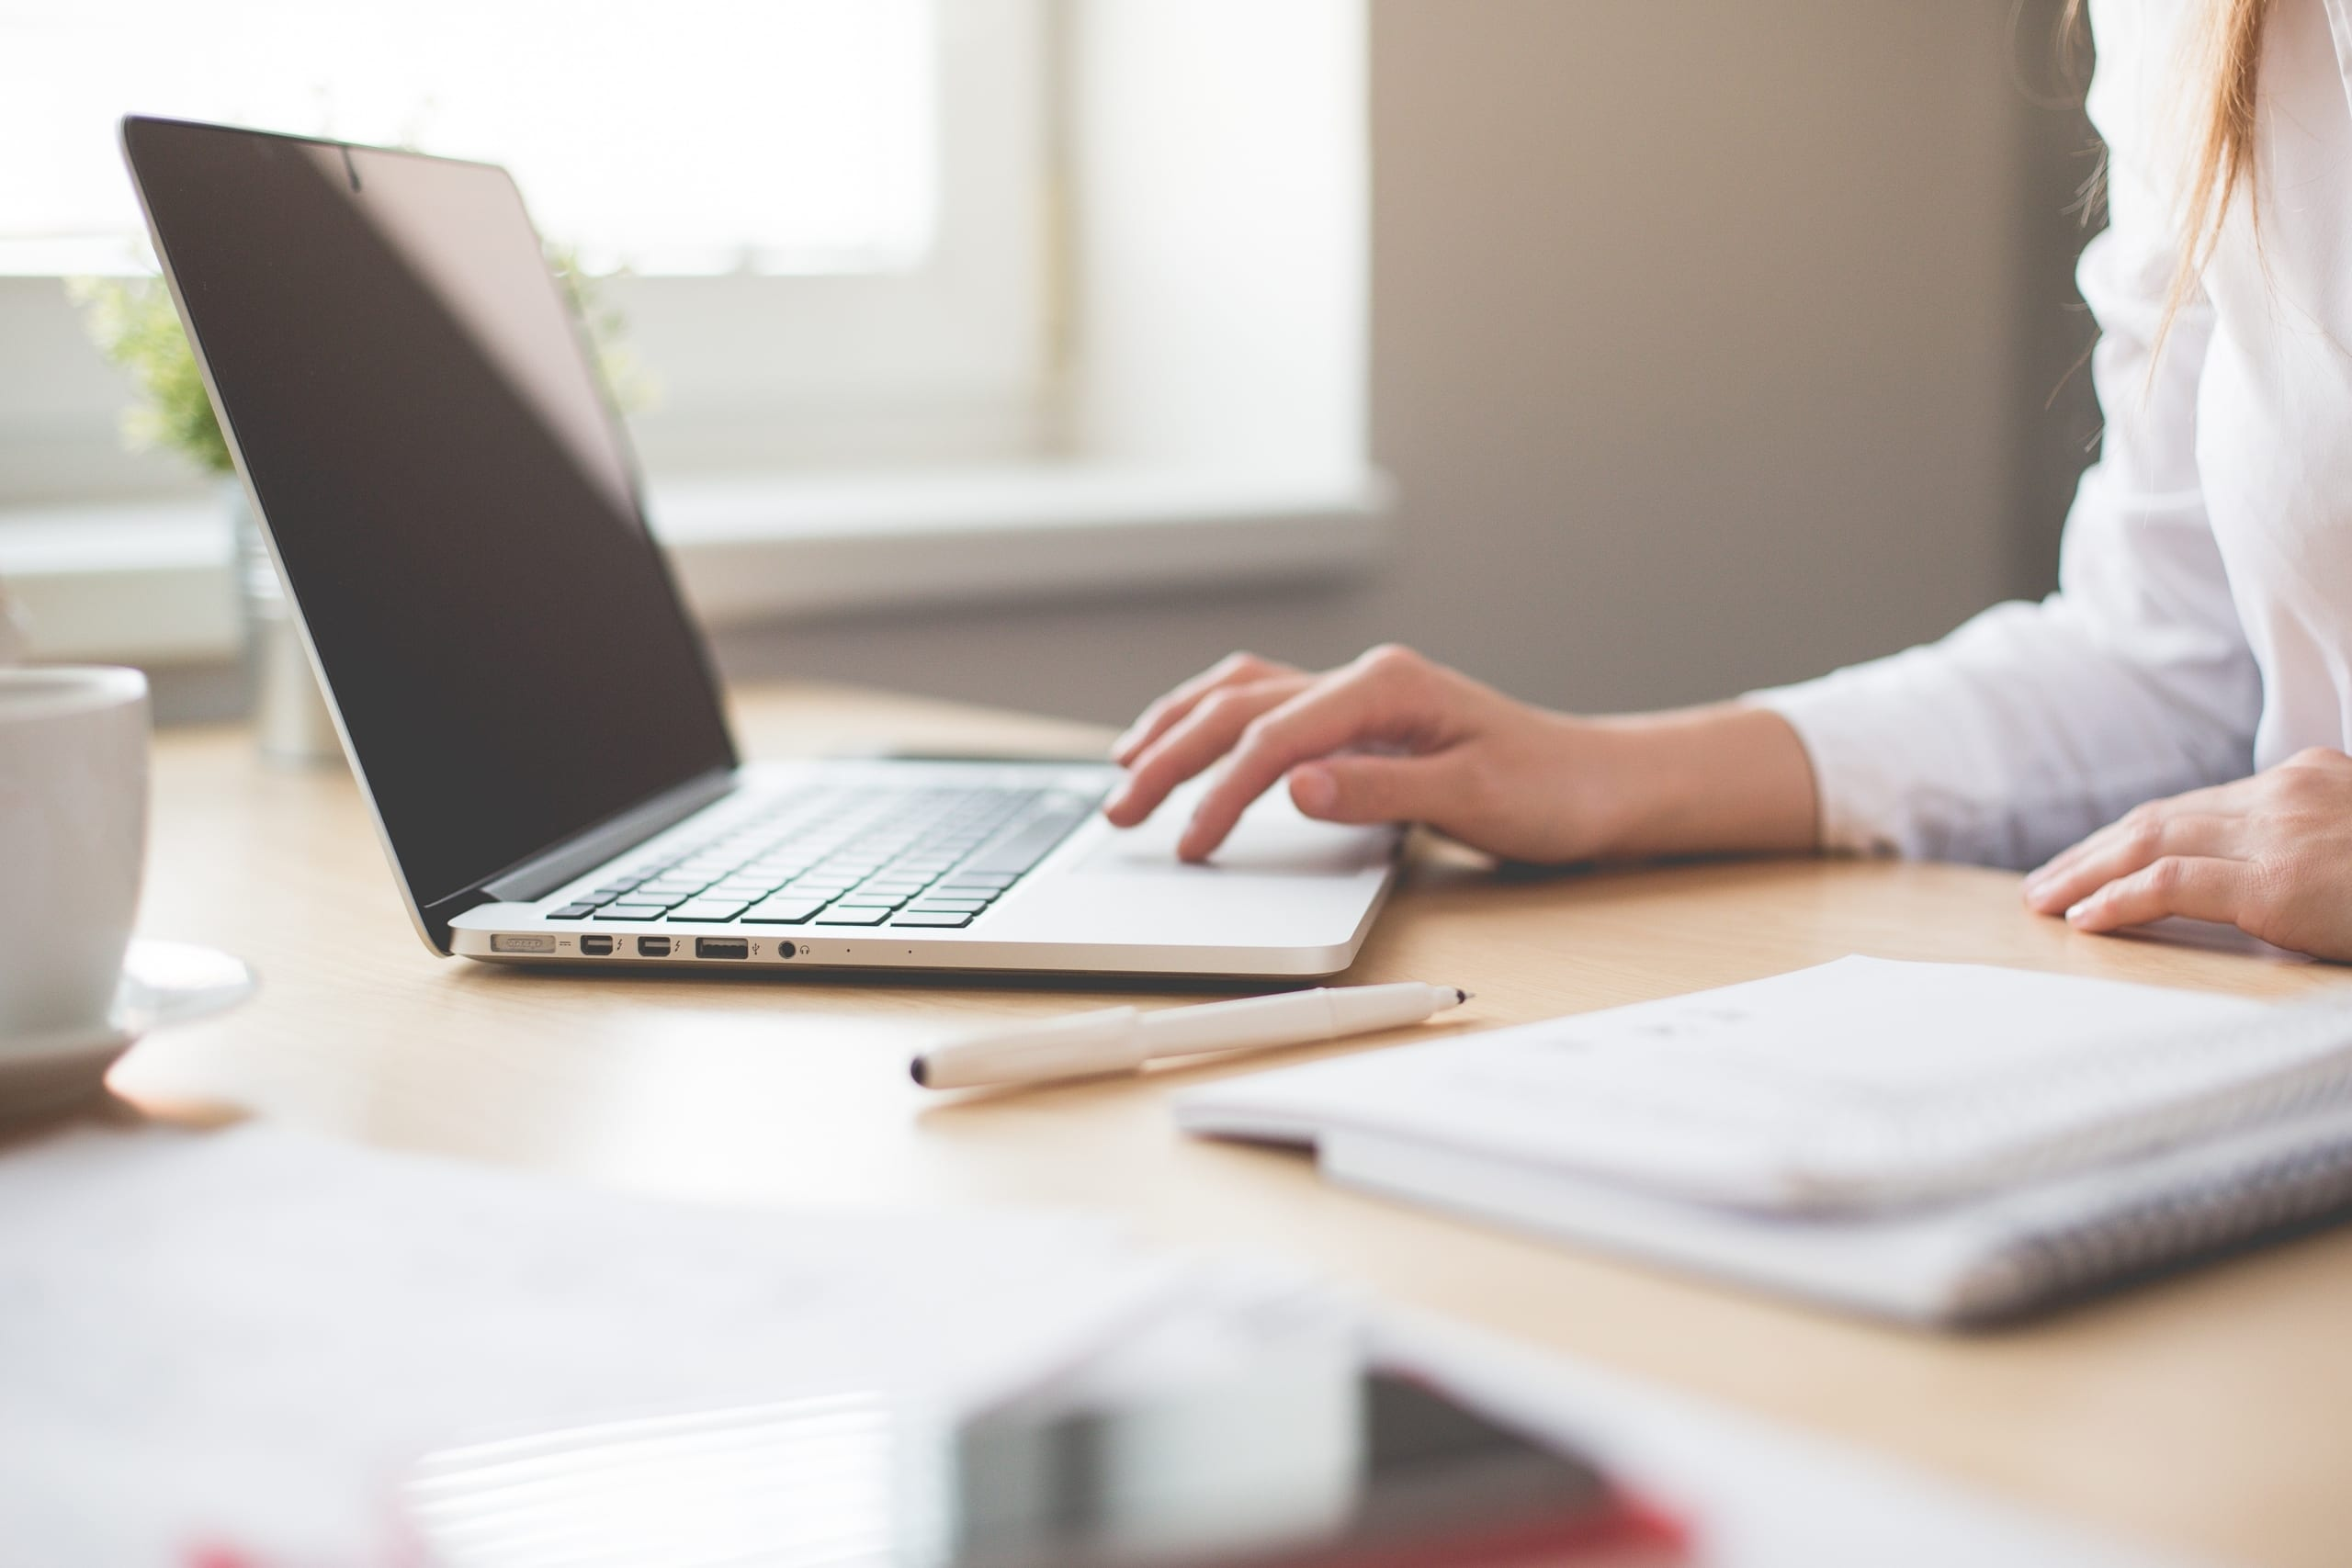 How to prepare for an online teaching interview